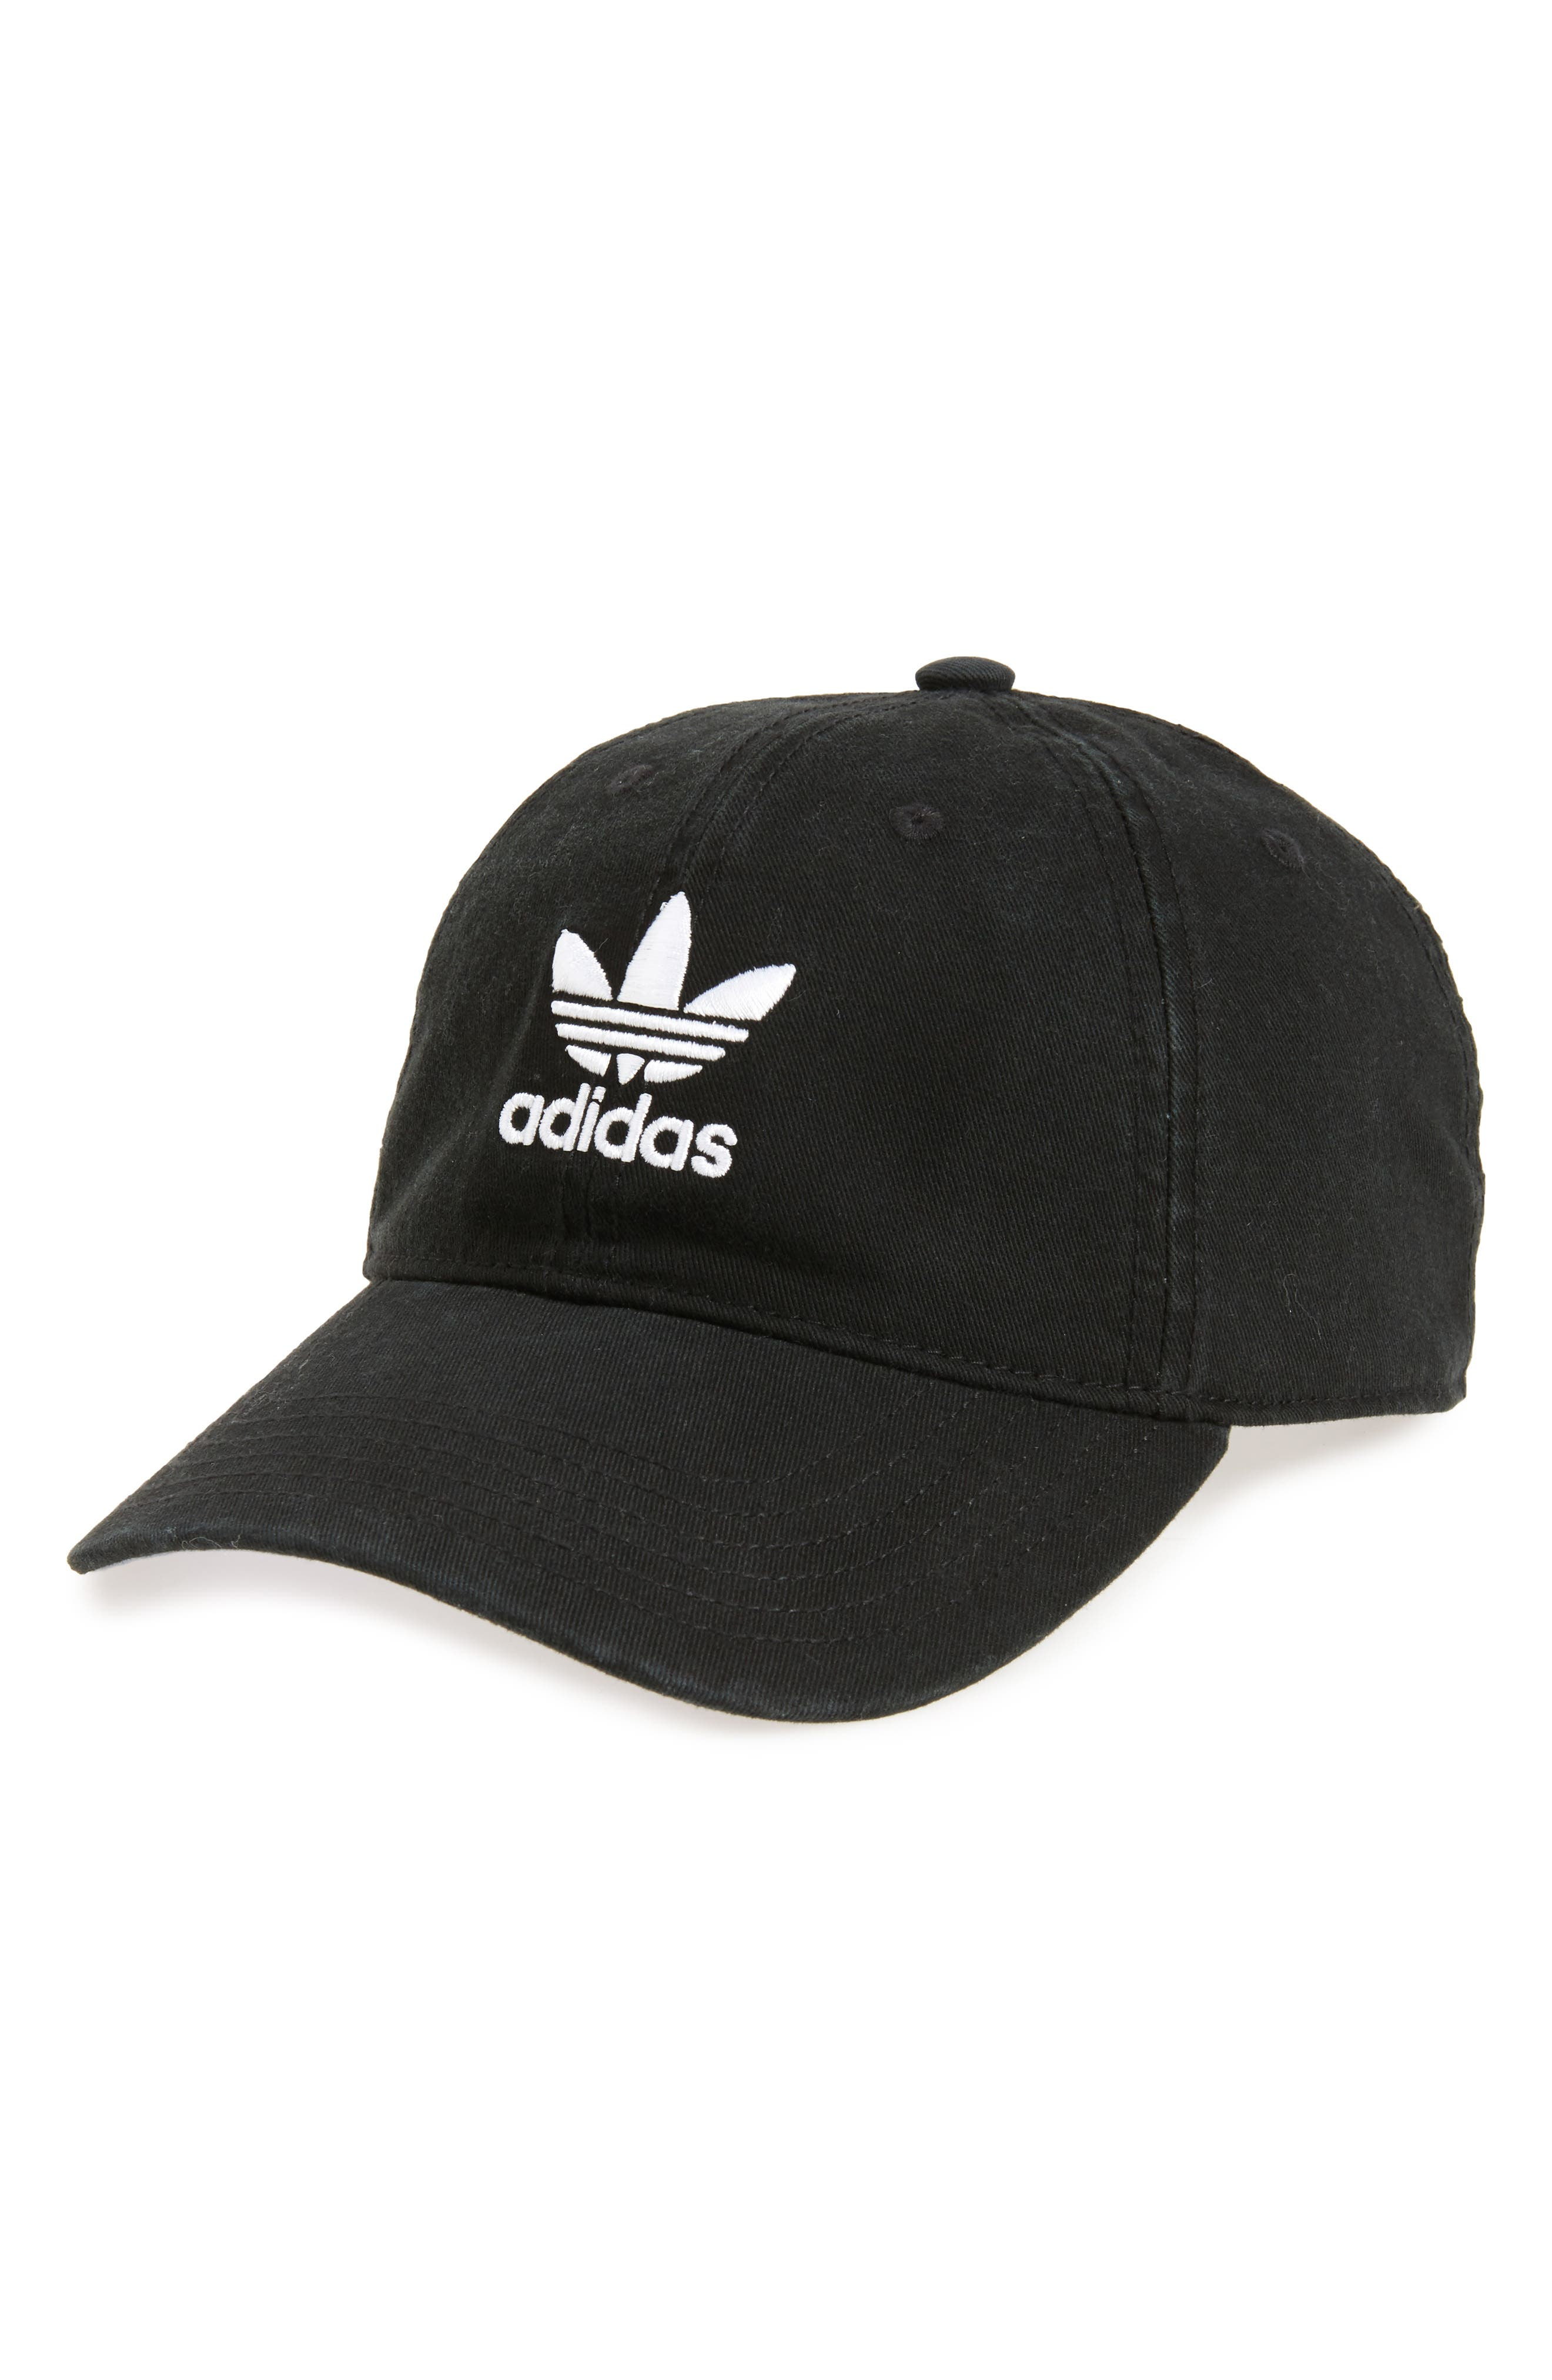 adidas Originals Relaxed Baseball Cap